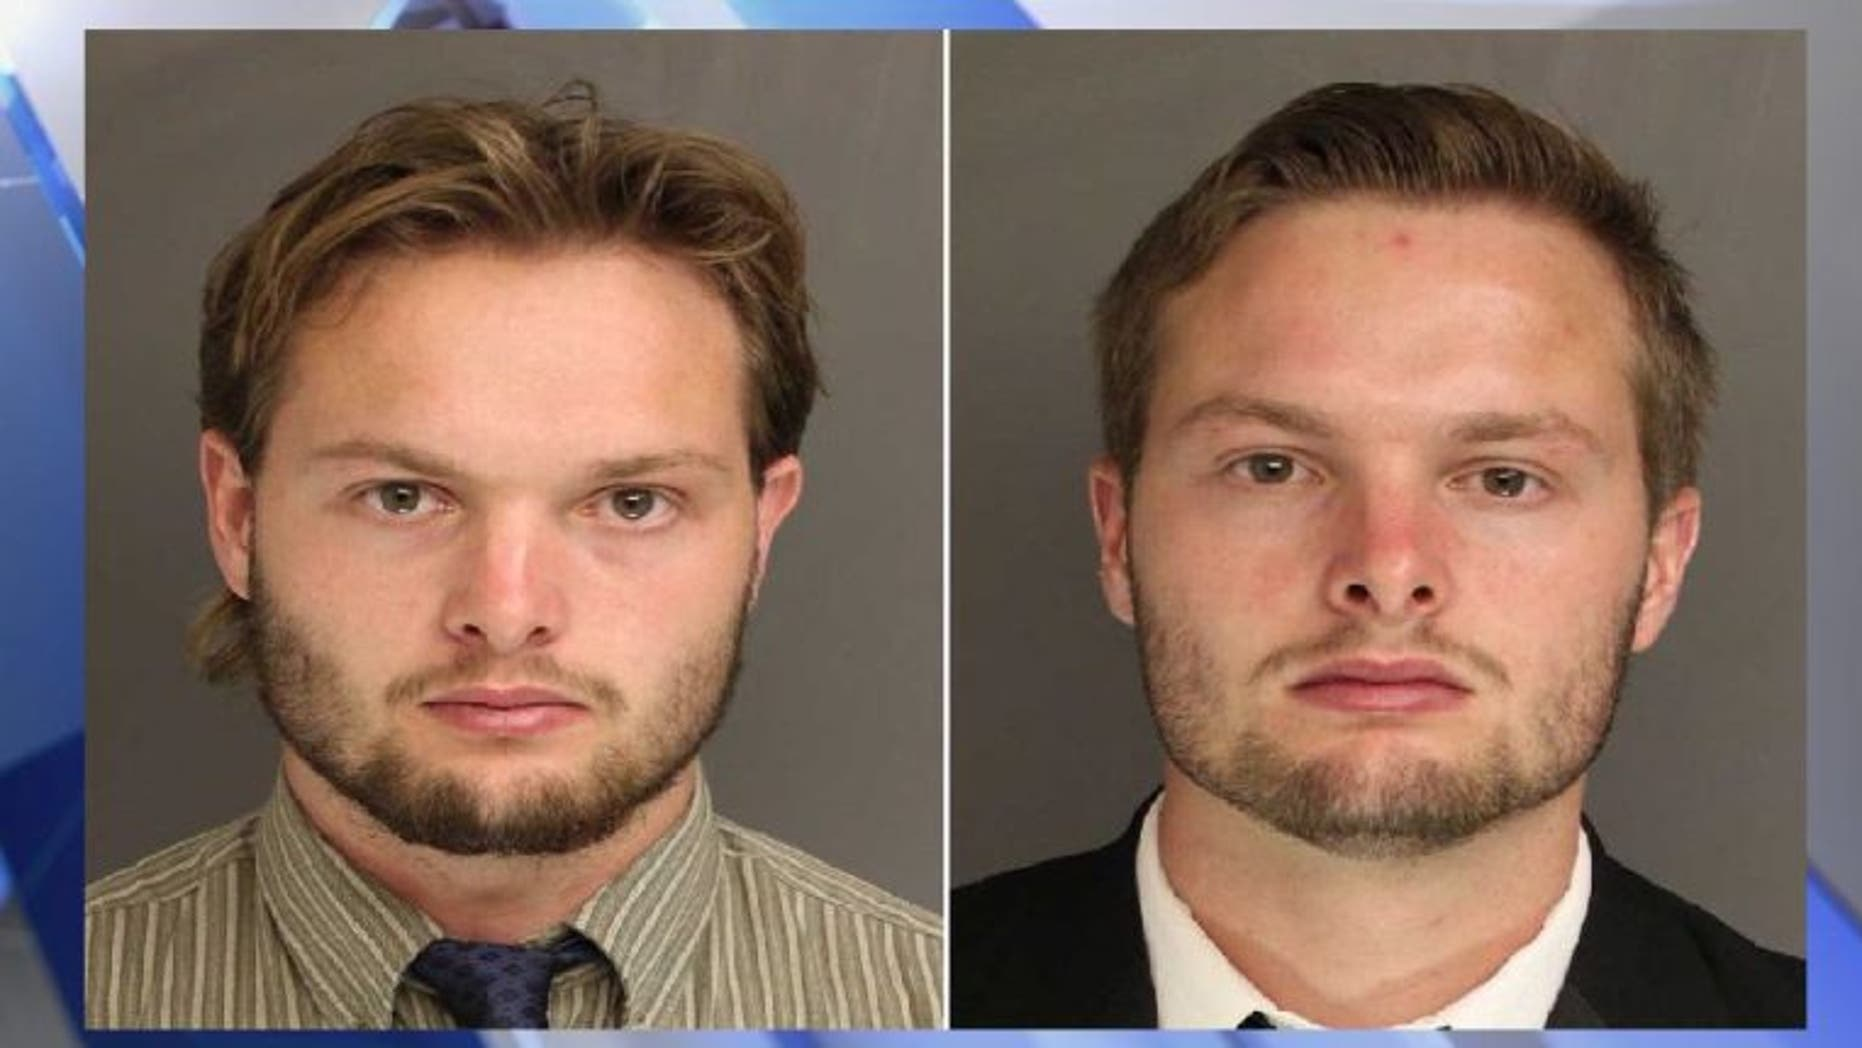 Caleb Tate, left, and Daniel Tate, right, are accused of building and blowing up IEDs.